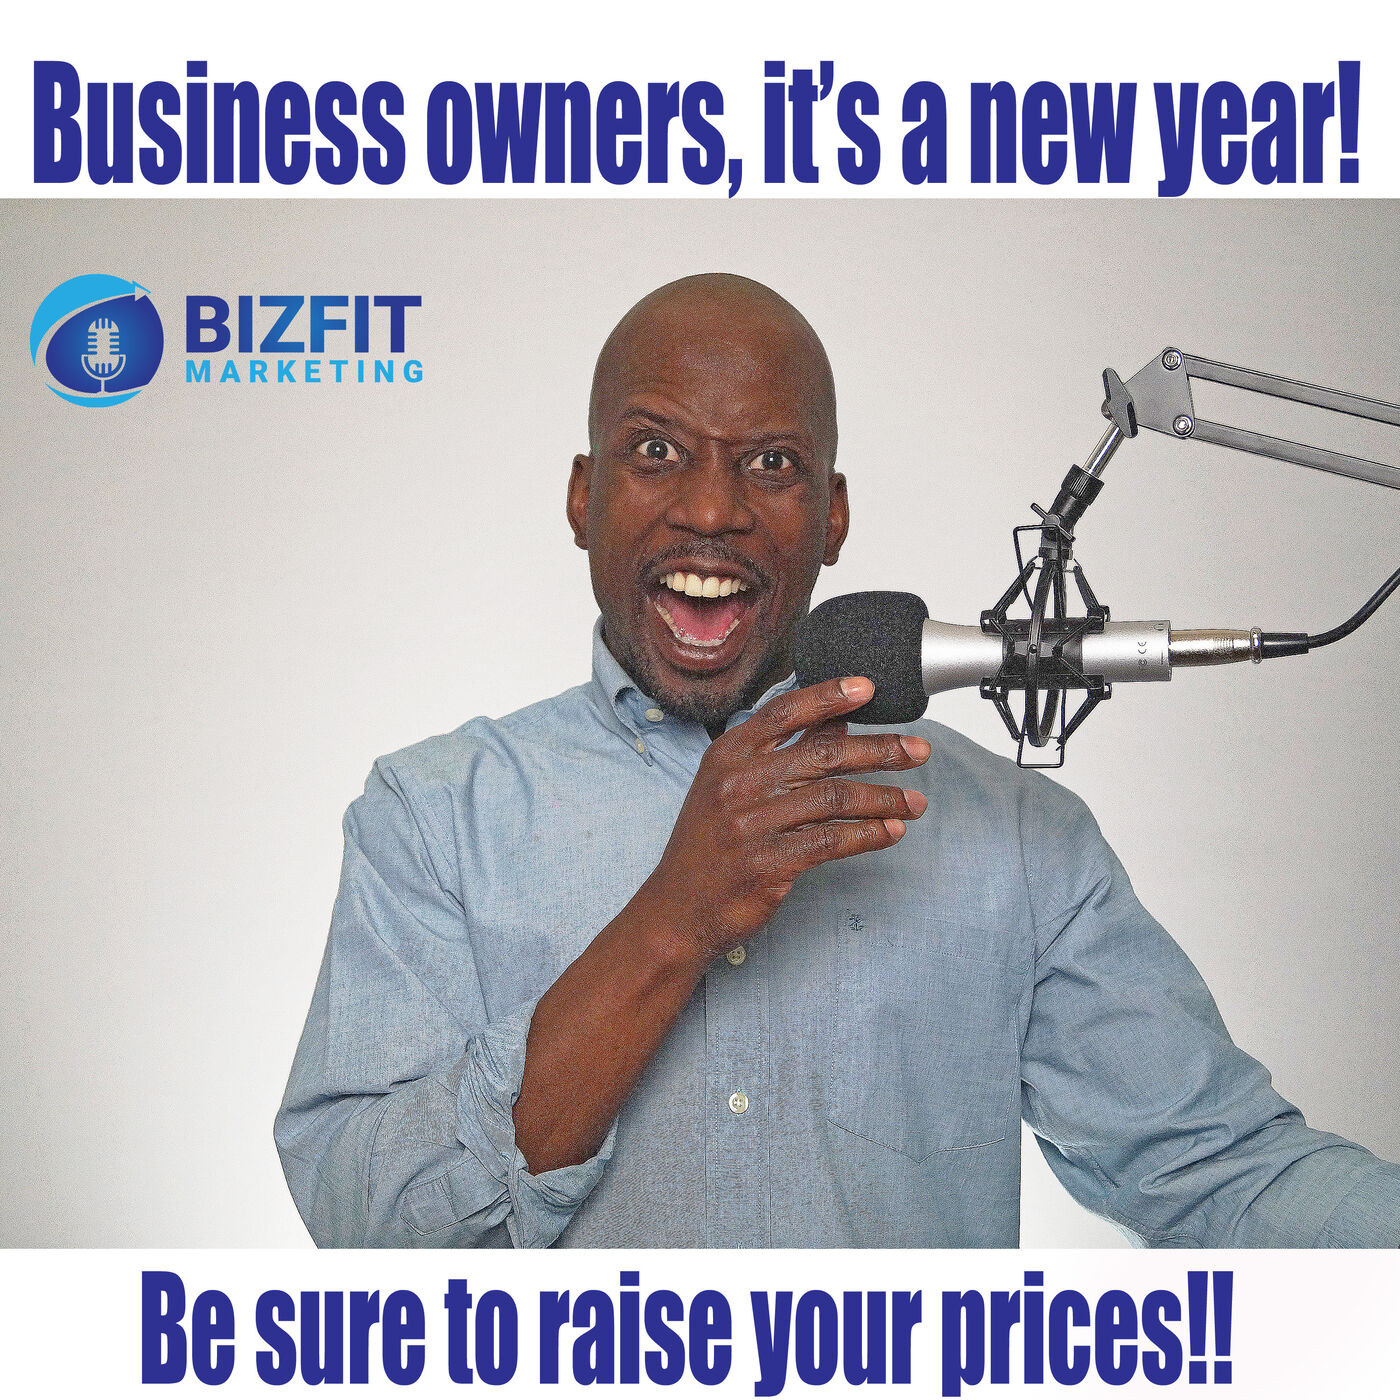 Raise Your Prices for the New Year